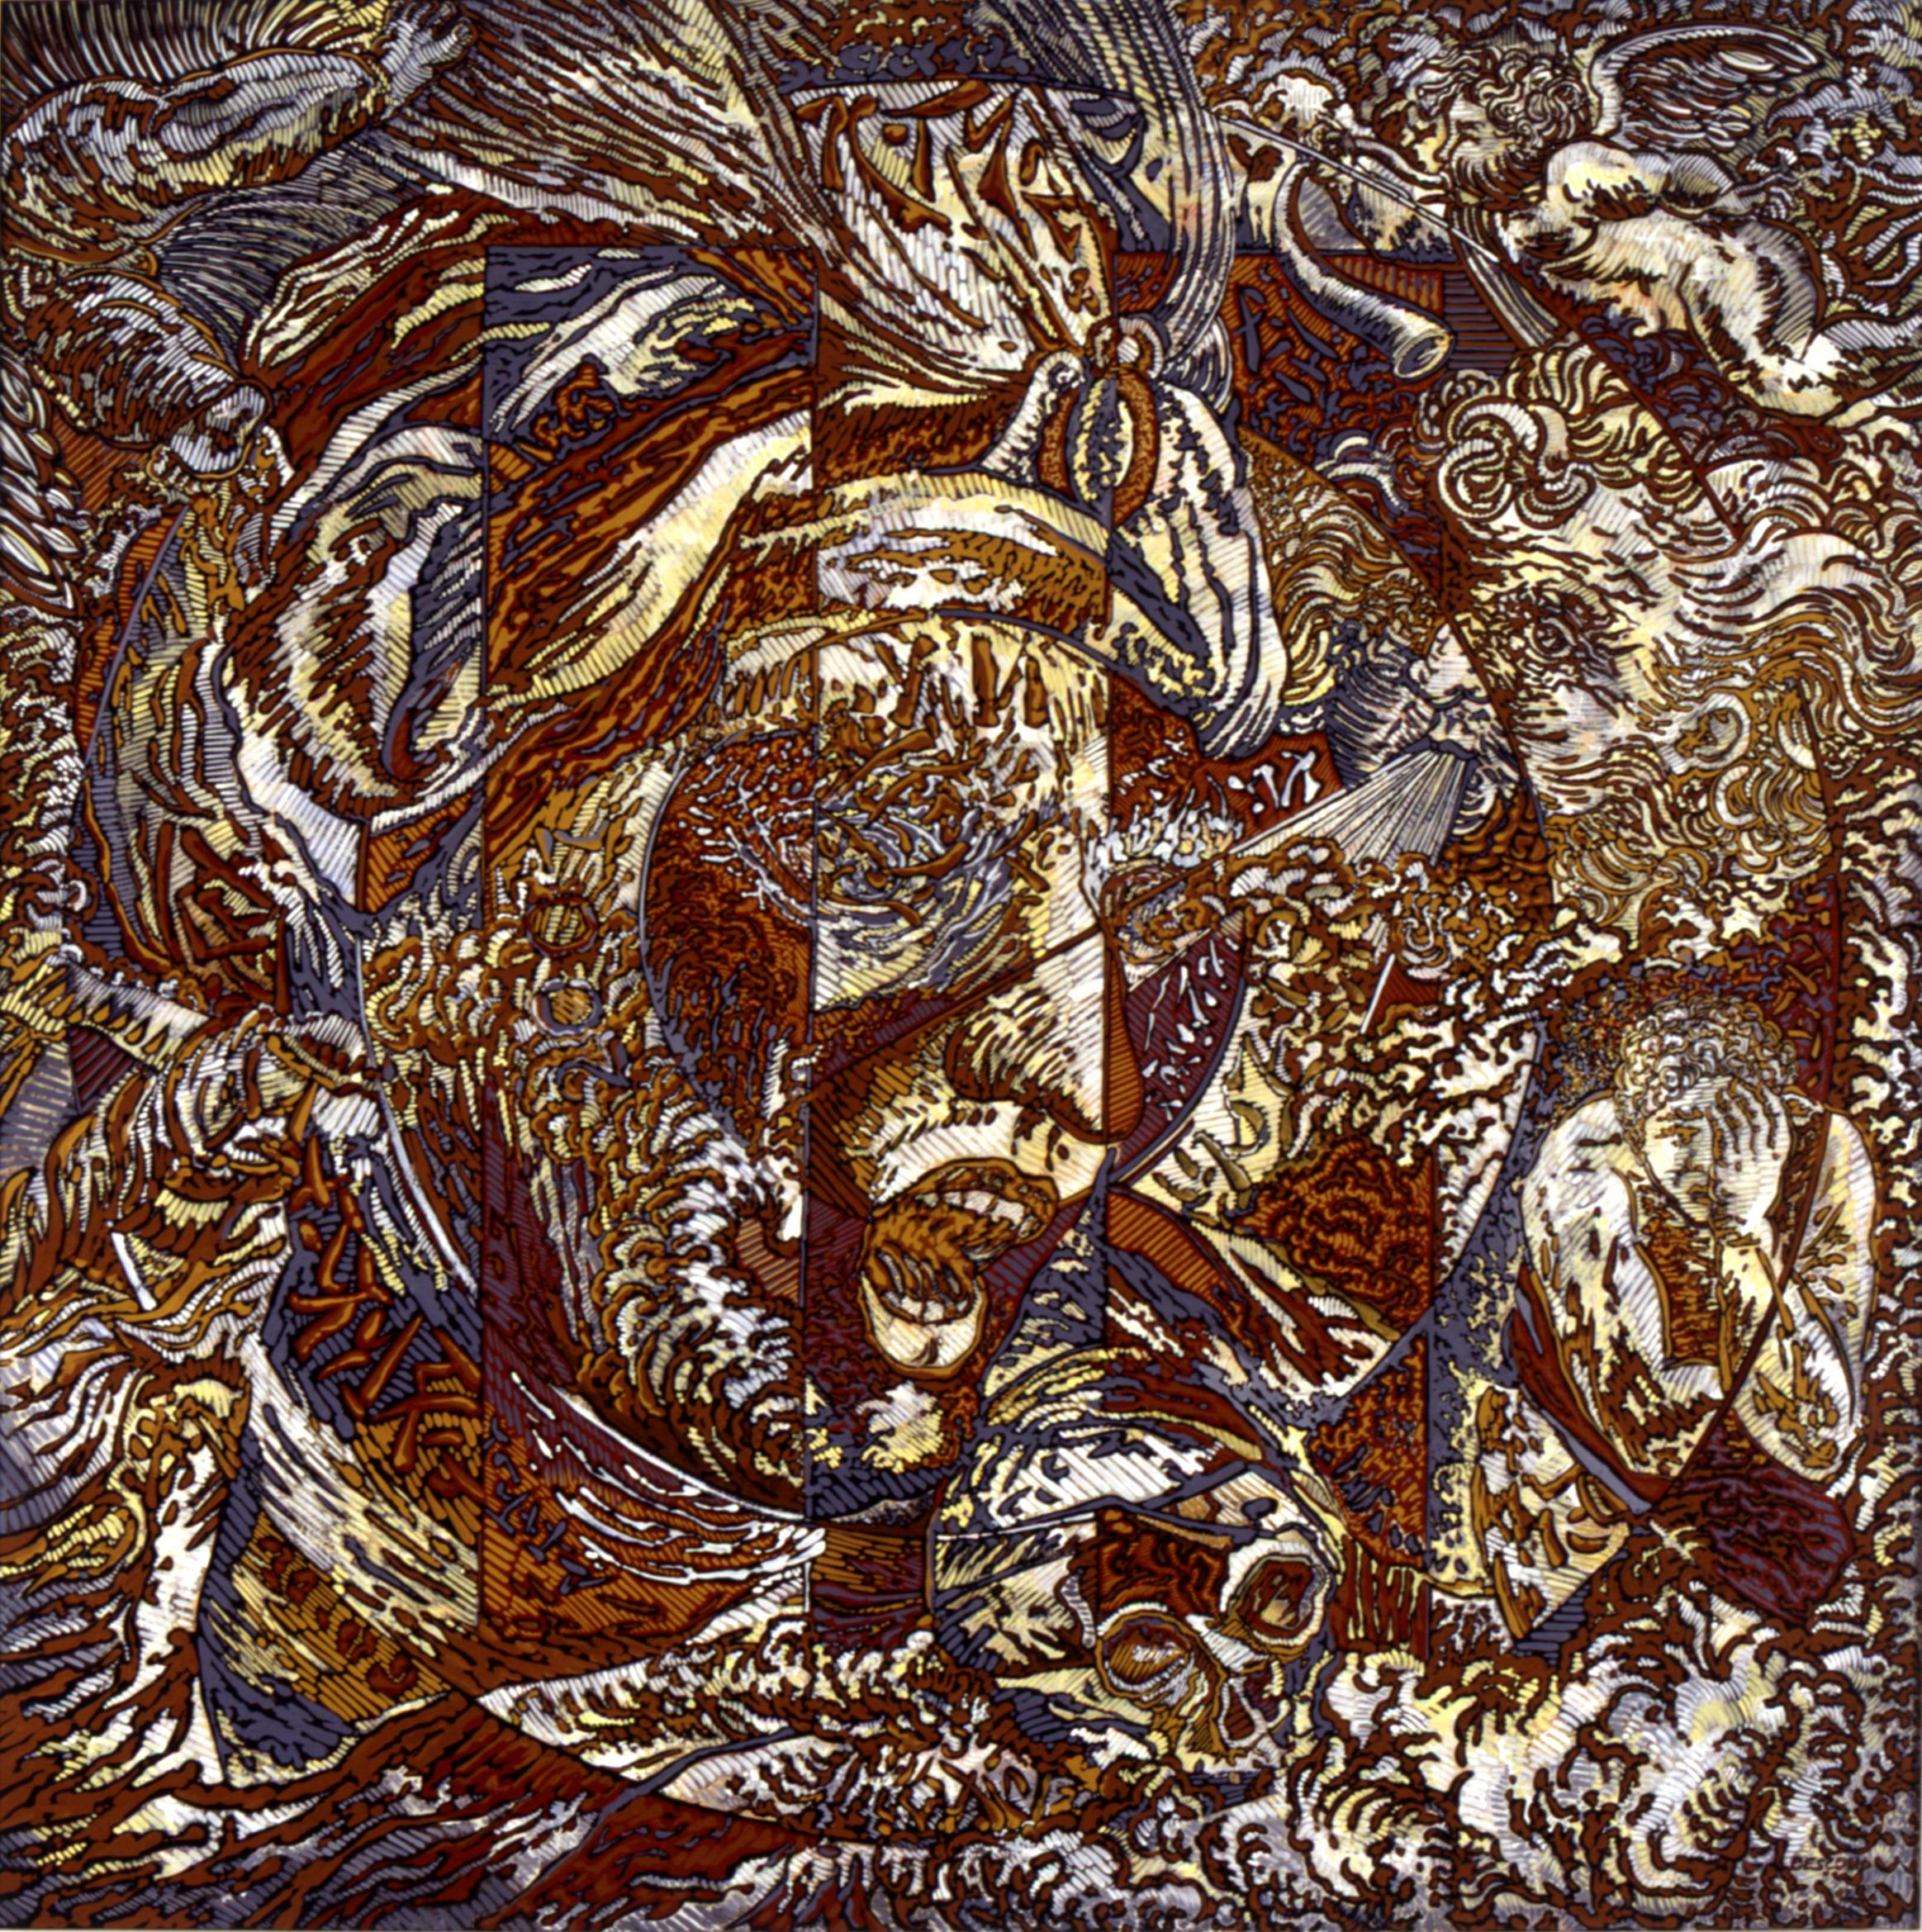 N.Y., Mythological Figure and Angels Large Squared Brown White Acrylic Painting